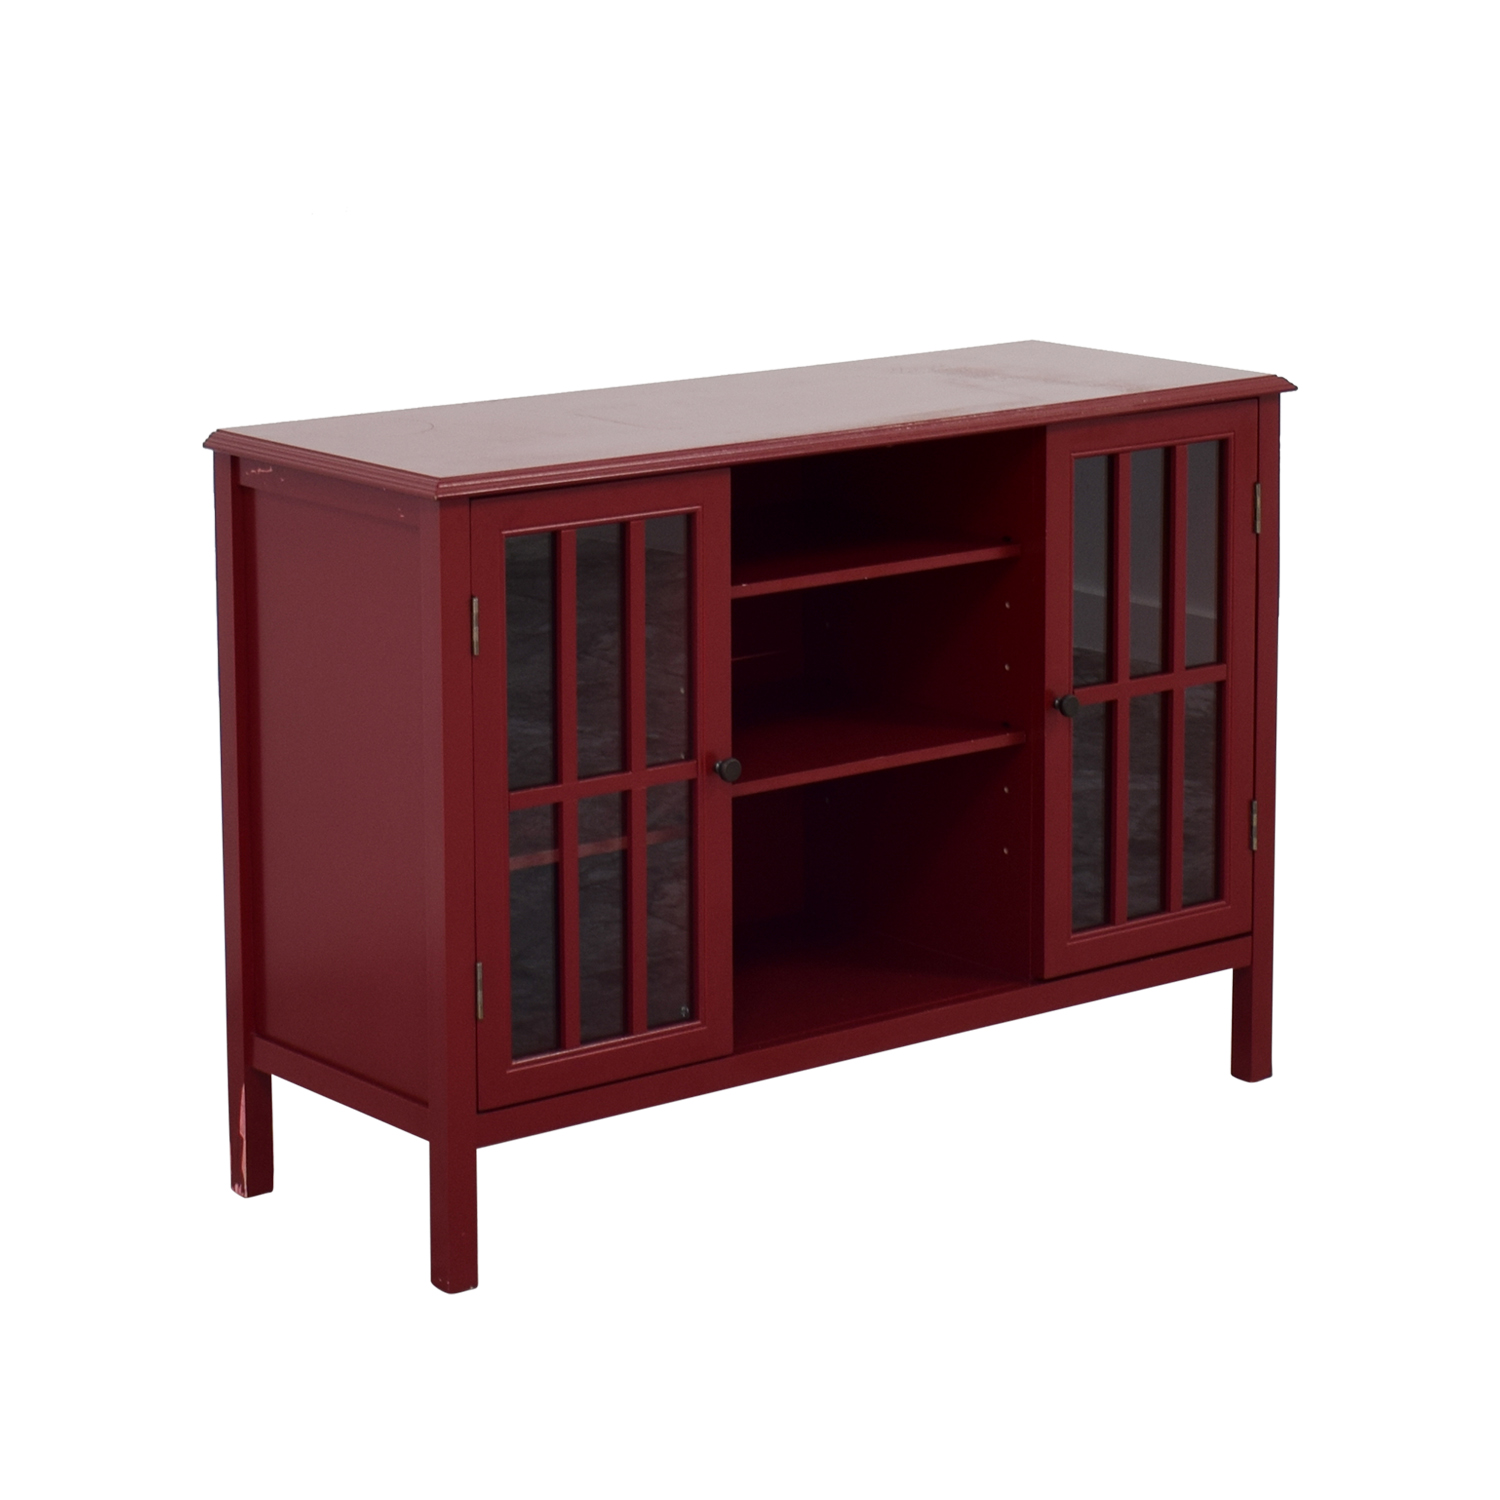 off target windham two door cabinet with shelves storage second hand accent table dimensions carpet transition trim antique looking side tables black coffee drawers round metal